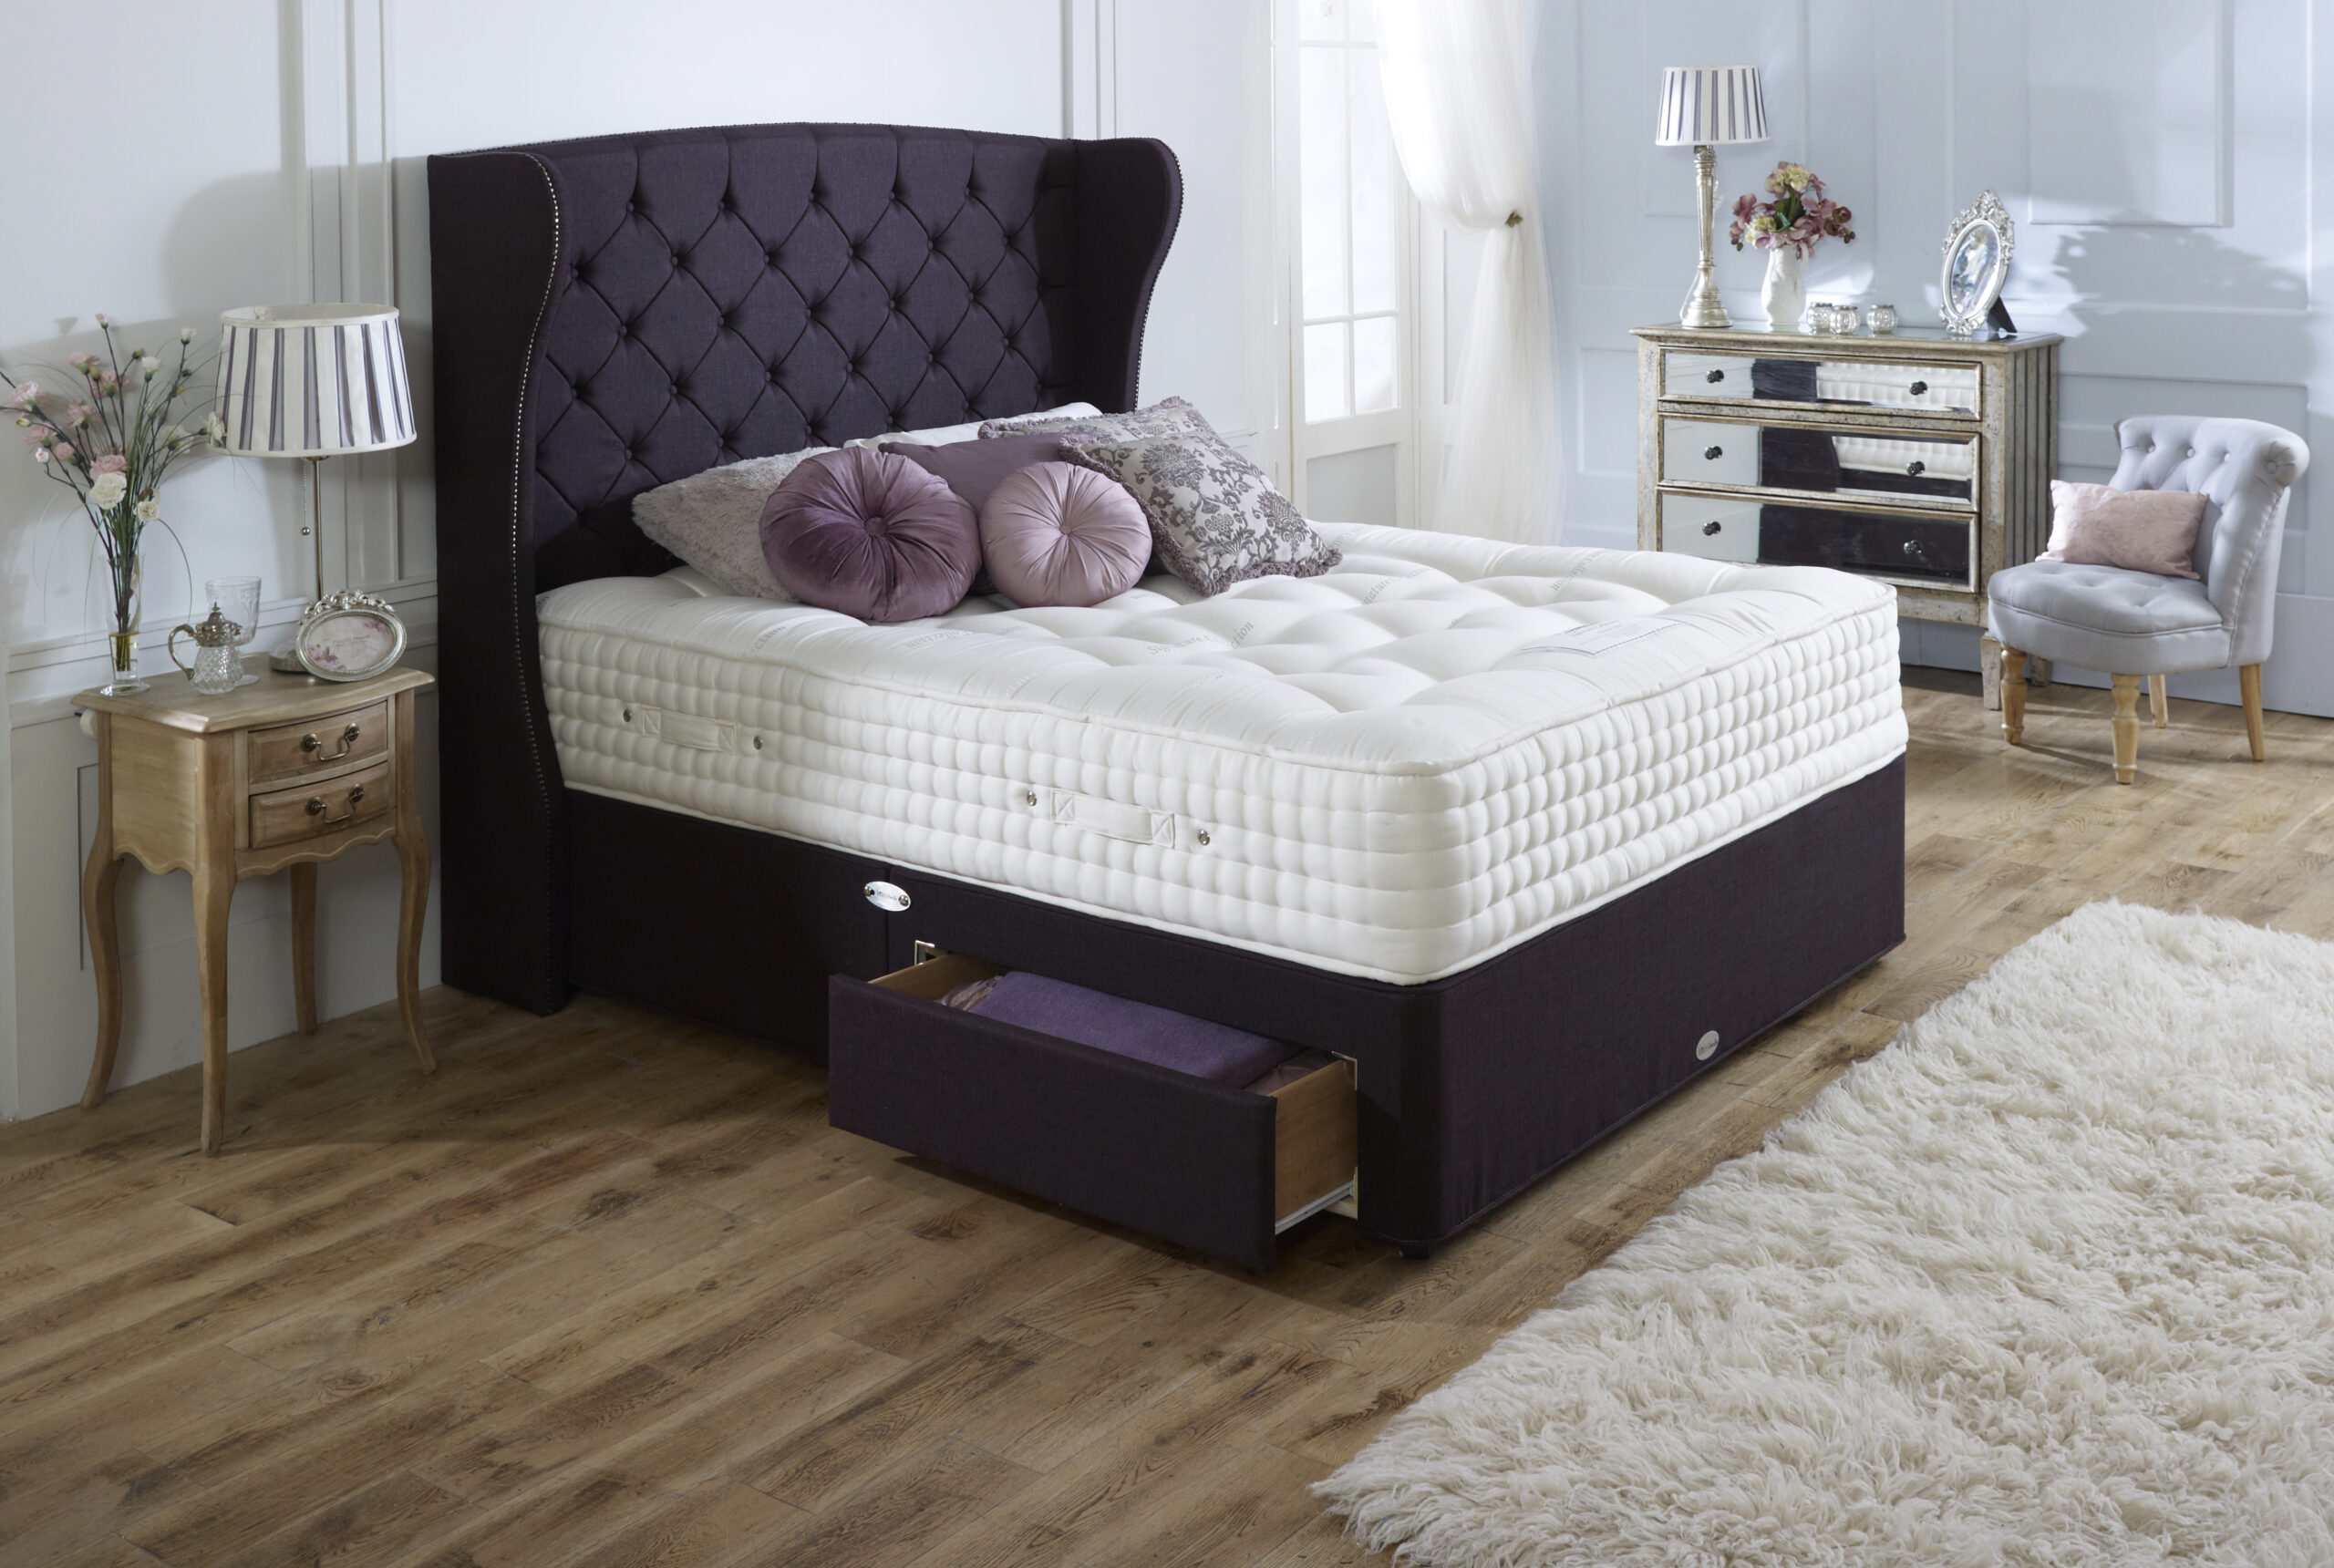 Waterford Health bed